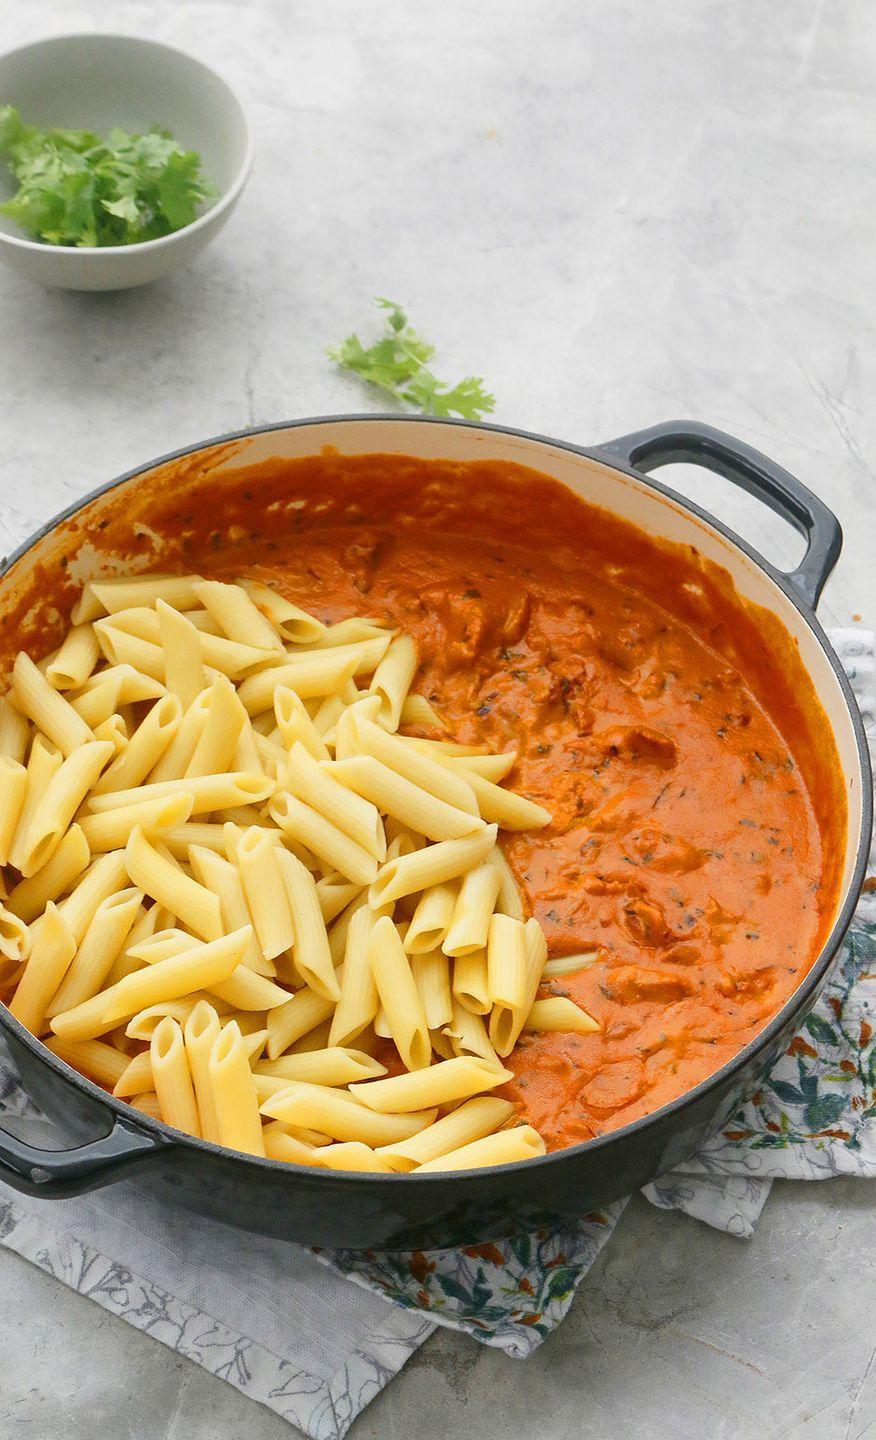 """<p>There are few things more delicious than authentic butter chicken. Follow this blogger's lead and combine the dish with pasta for a hearty meal.</p><p><strong>Get the recipe at <a href=""""https://www.kitchenathoskins.com/2020/08/18/butter-chicken-pasta/"""" rel=""""nofollow noopener"""" target=""""_blank"""" data-ylk=""""slk:Kitchen at Hoskins"""" class=""""link rapid-noclick-resp"""">Kitchen at Hoskins</a>.</strong></p>"""